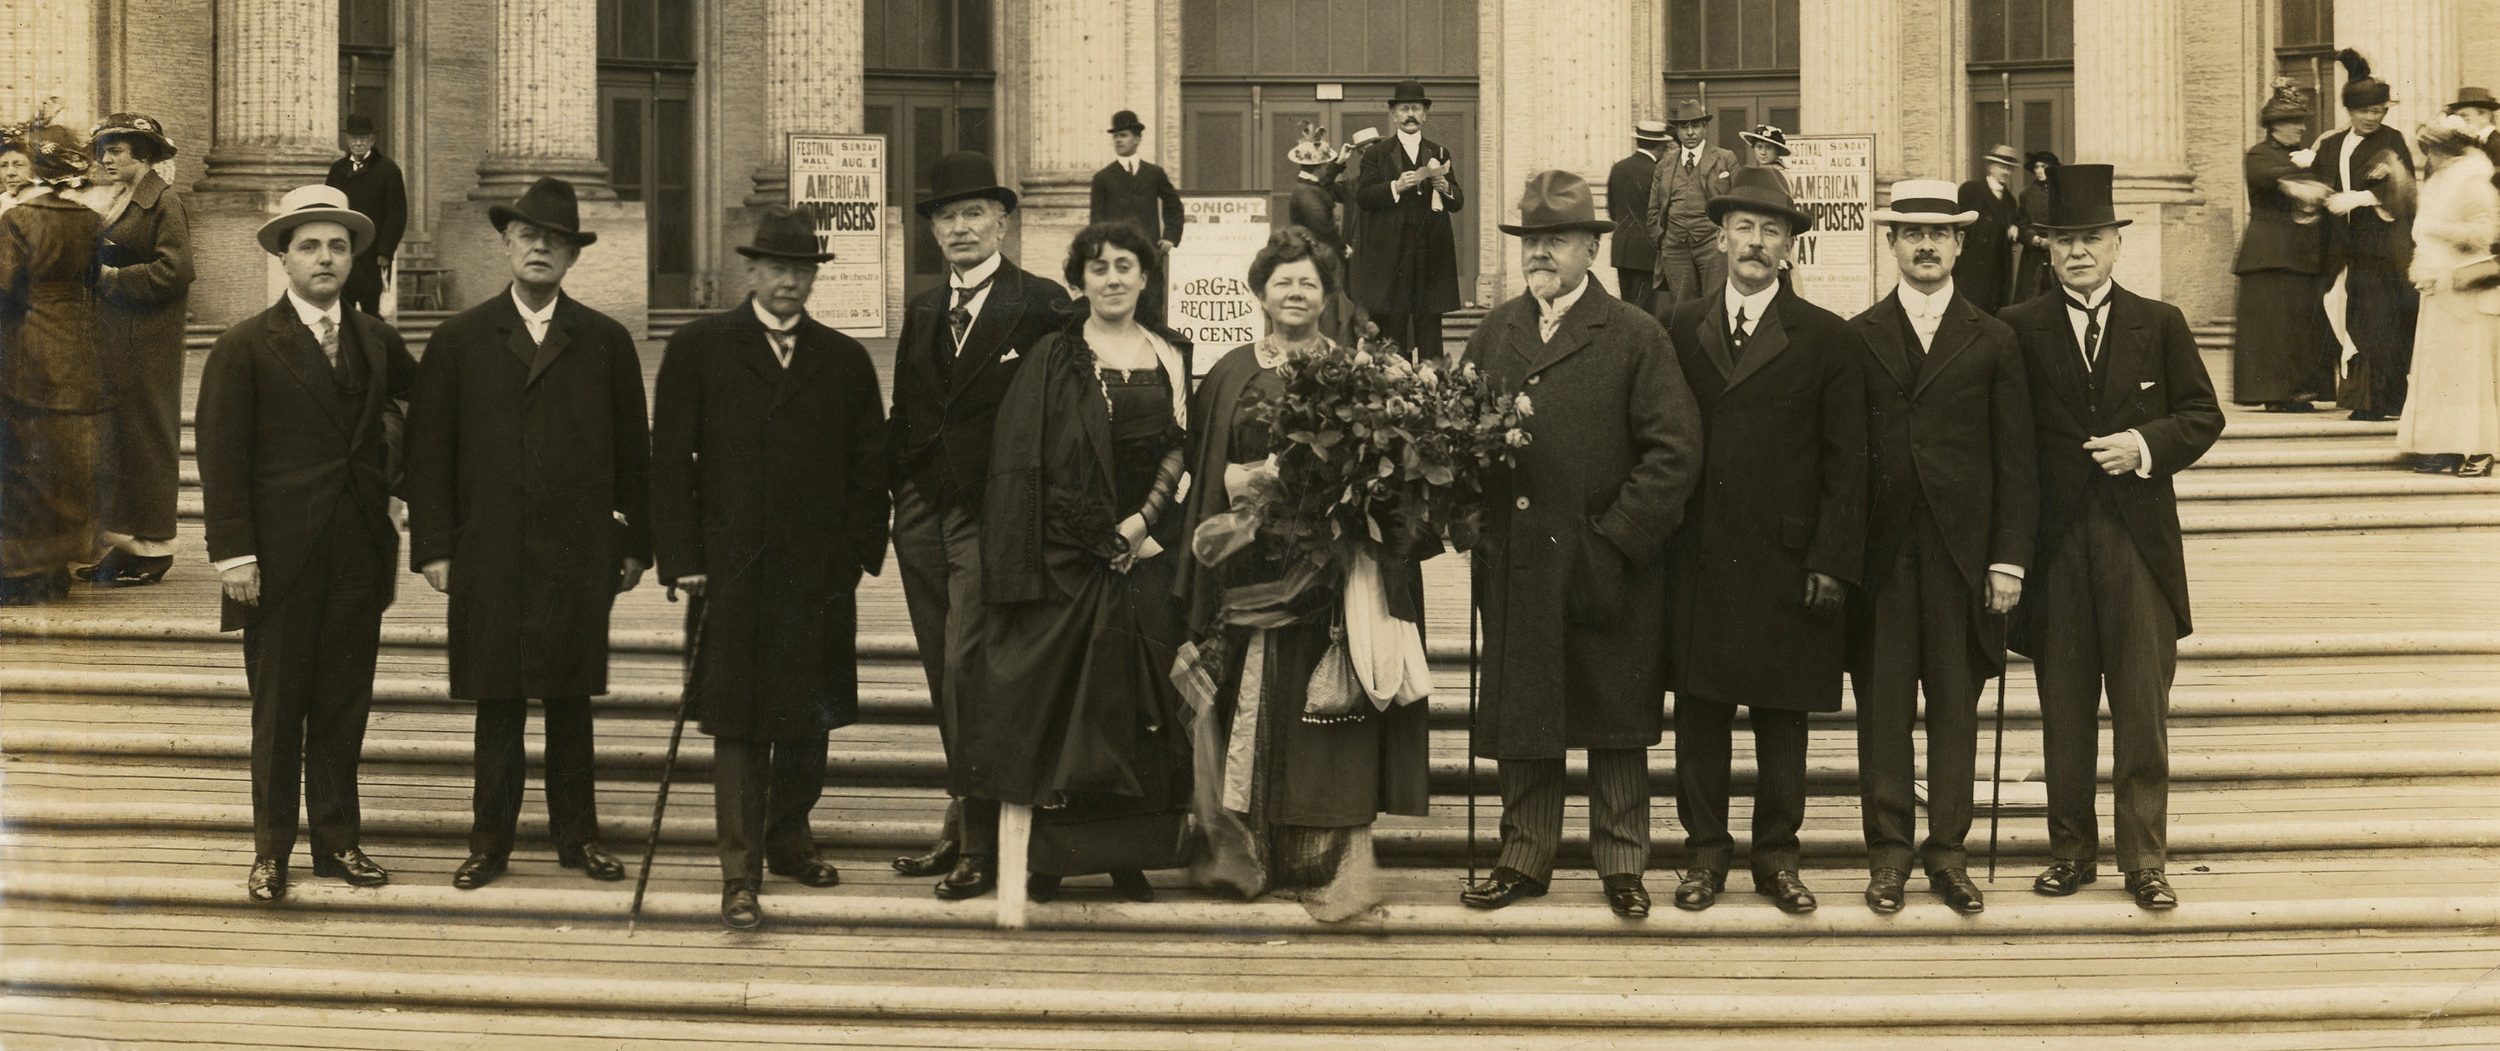 Beach, center with bouquet, with fellow composers at Panama Pacific International Exposition in San Francisco, 1915.